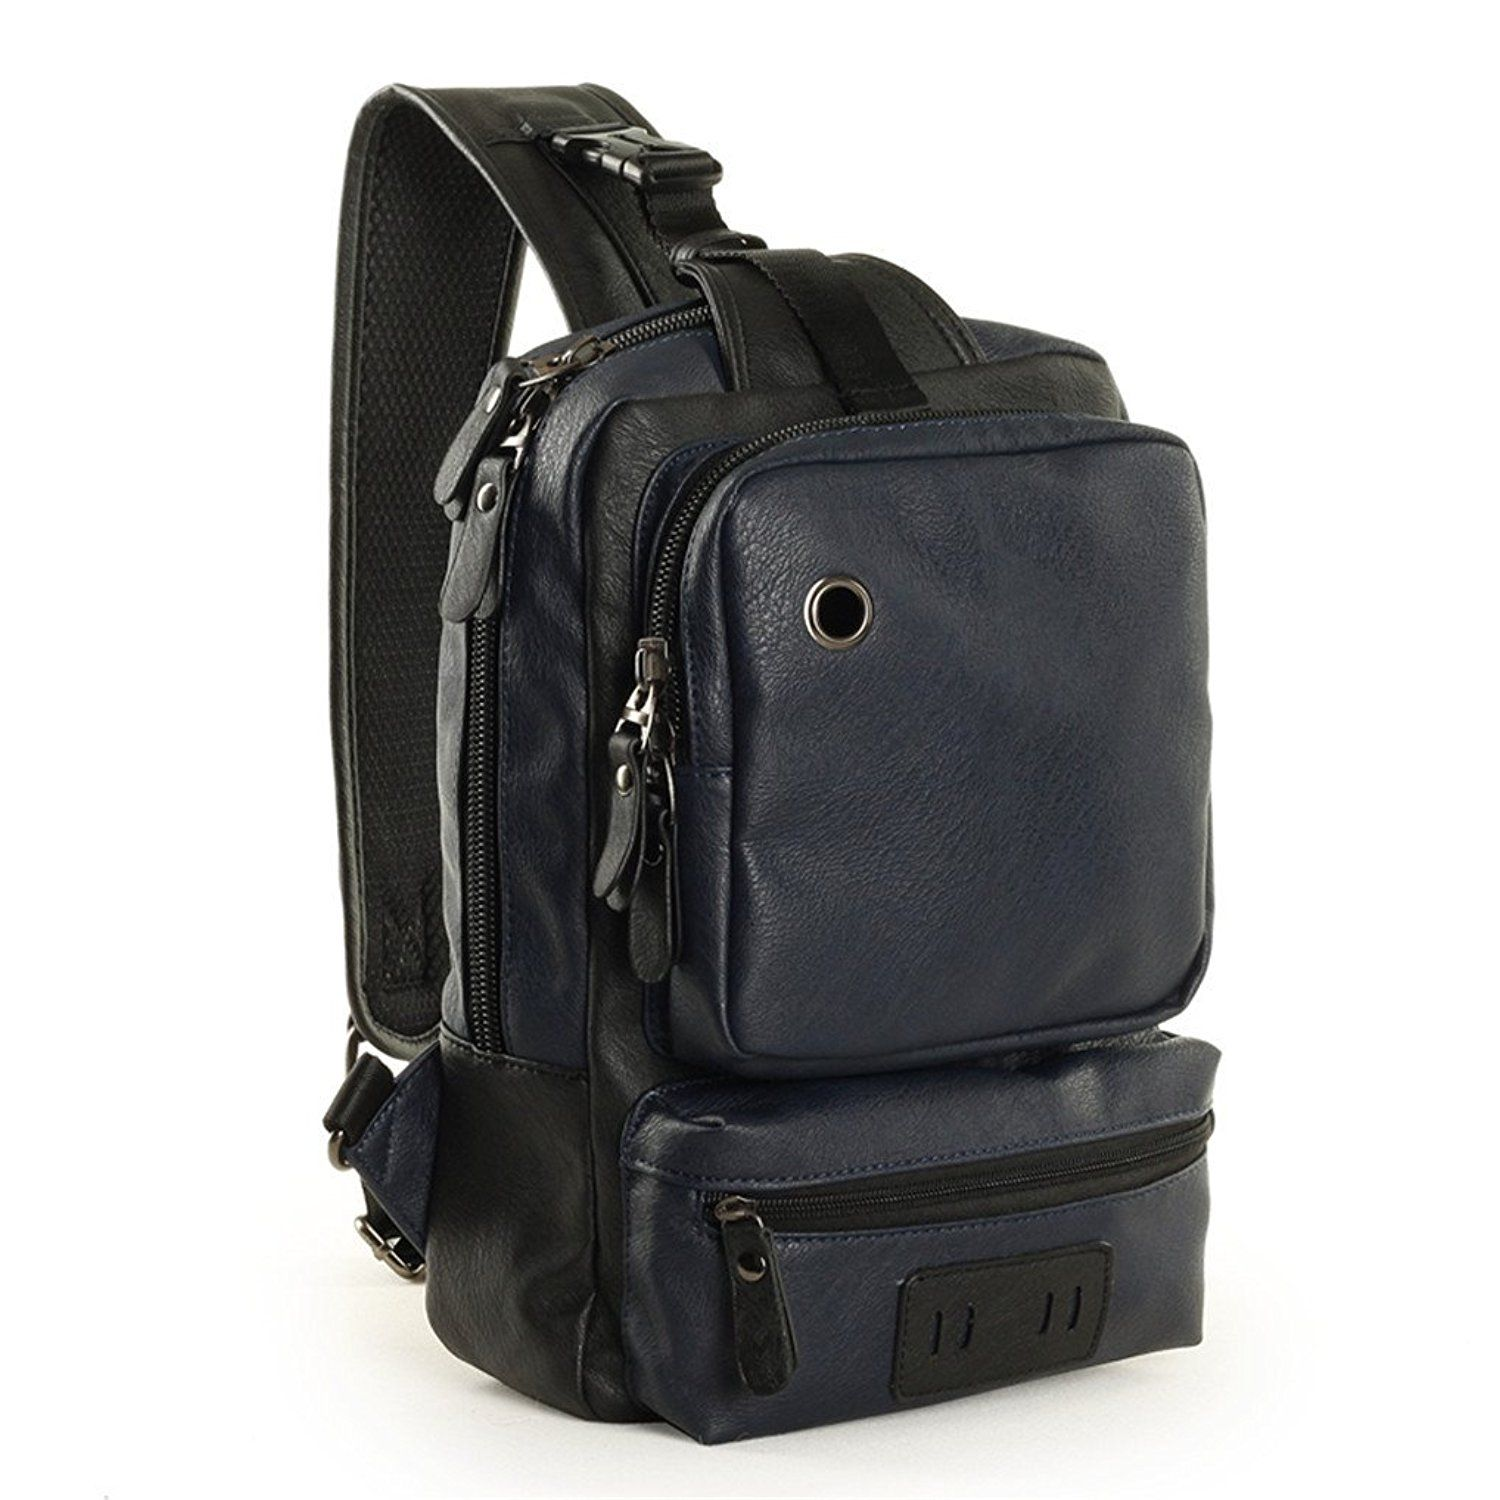 GumstyleŒ¬ Fashion Men's Leather Cross Body Daypacks Chest Pack Bag Black/Blue/Brown ** This is an Amazon Affiliate link. You can find out more details at the link of the image.